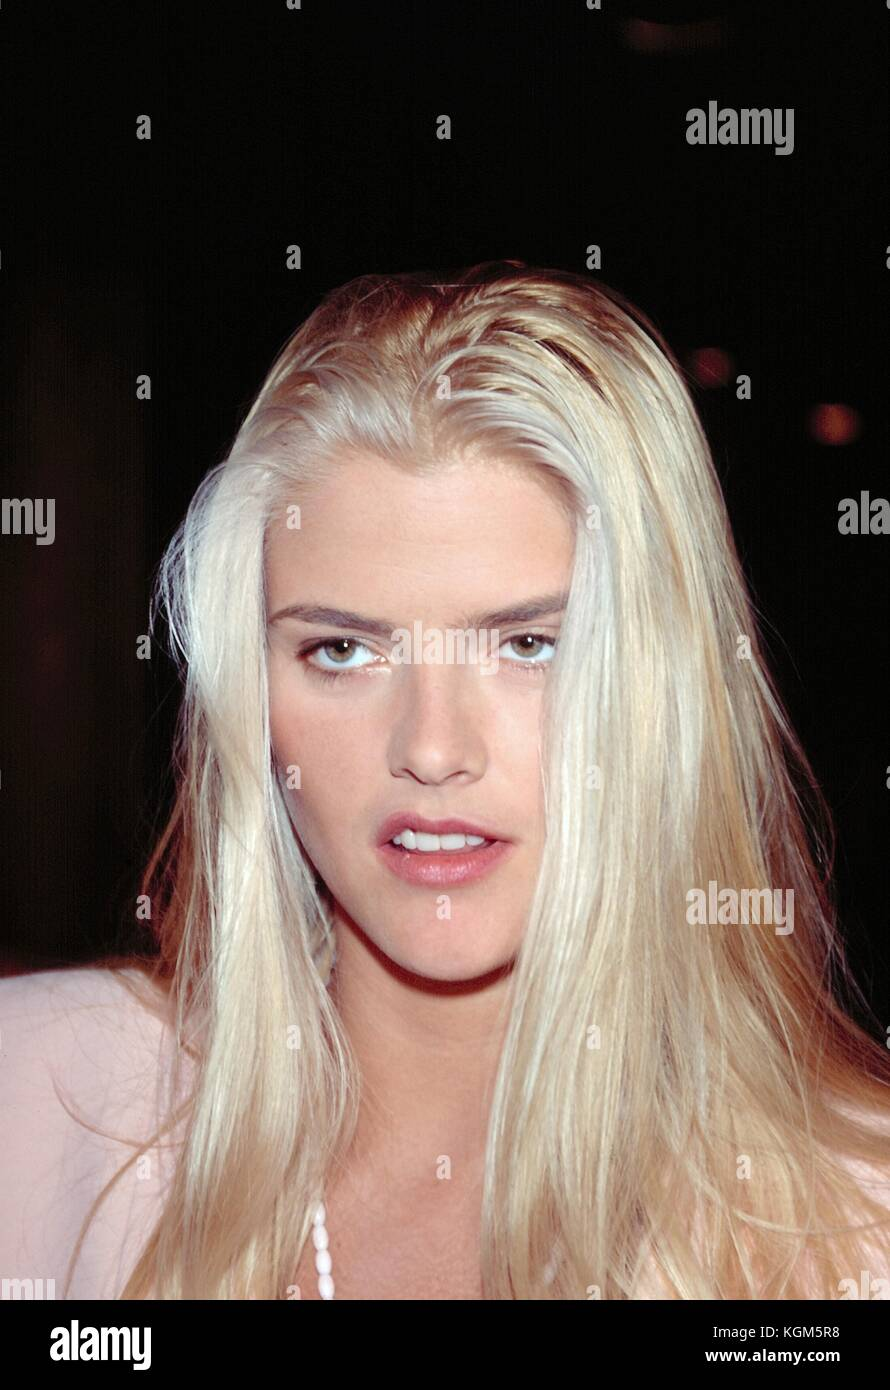 Right. Anna nicole smith tan that would